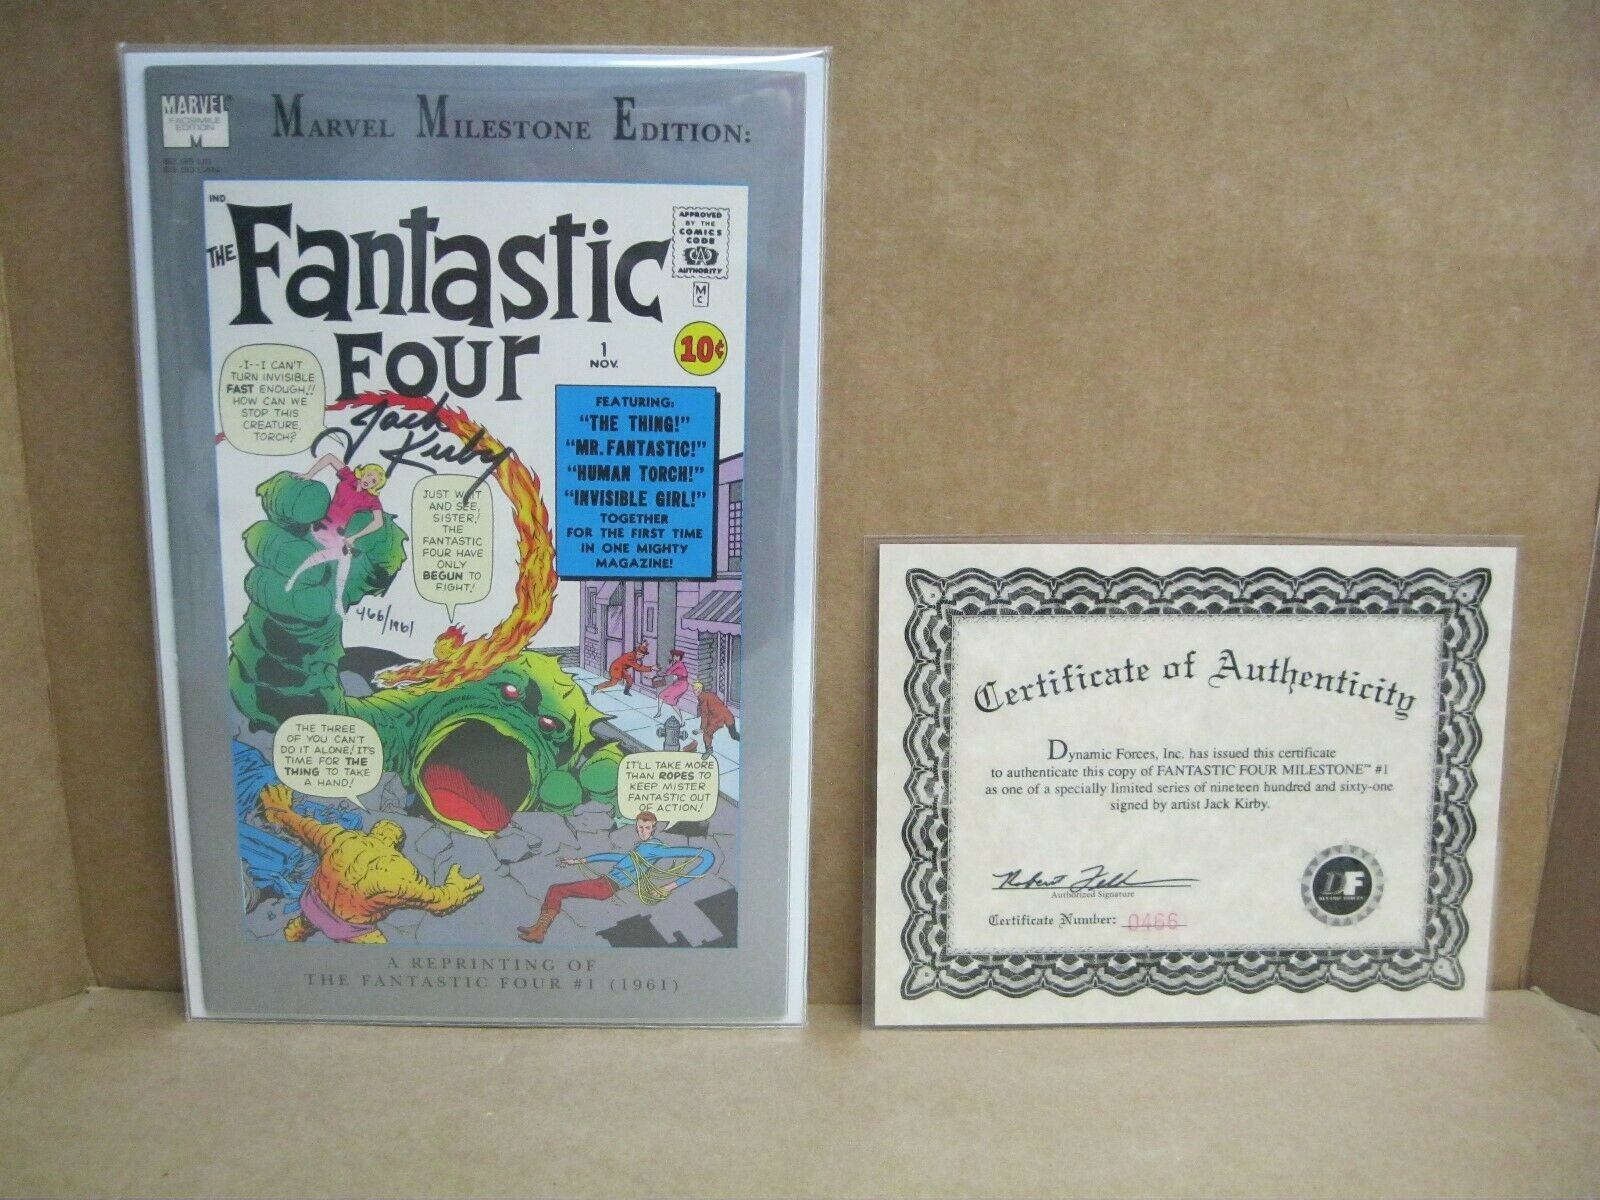 (FANTASTIC FOUR MILESTONE #1) SIGNED BY (JACK KIRBY) & COA FROM (DYNAMIC FORCES)